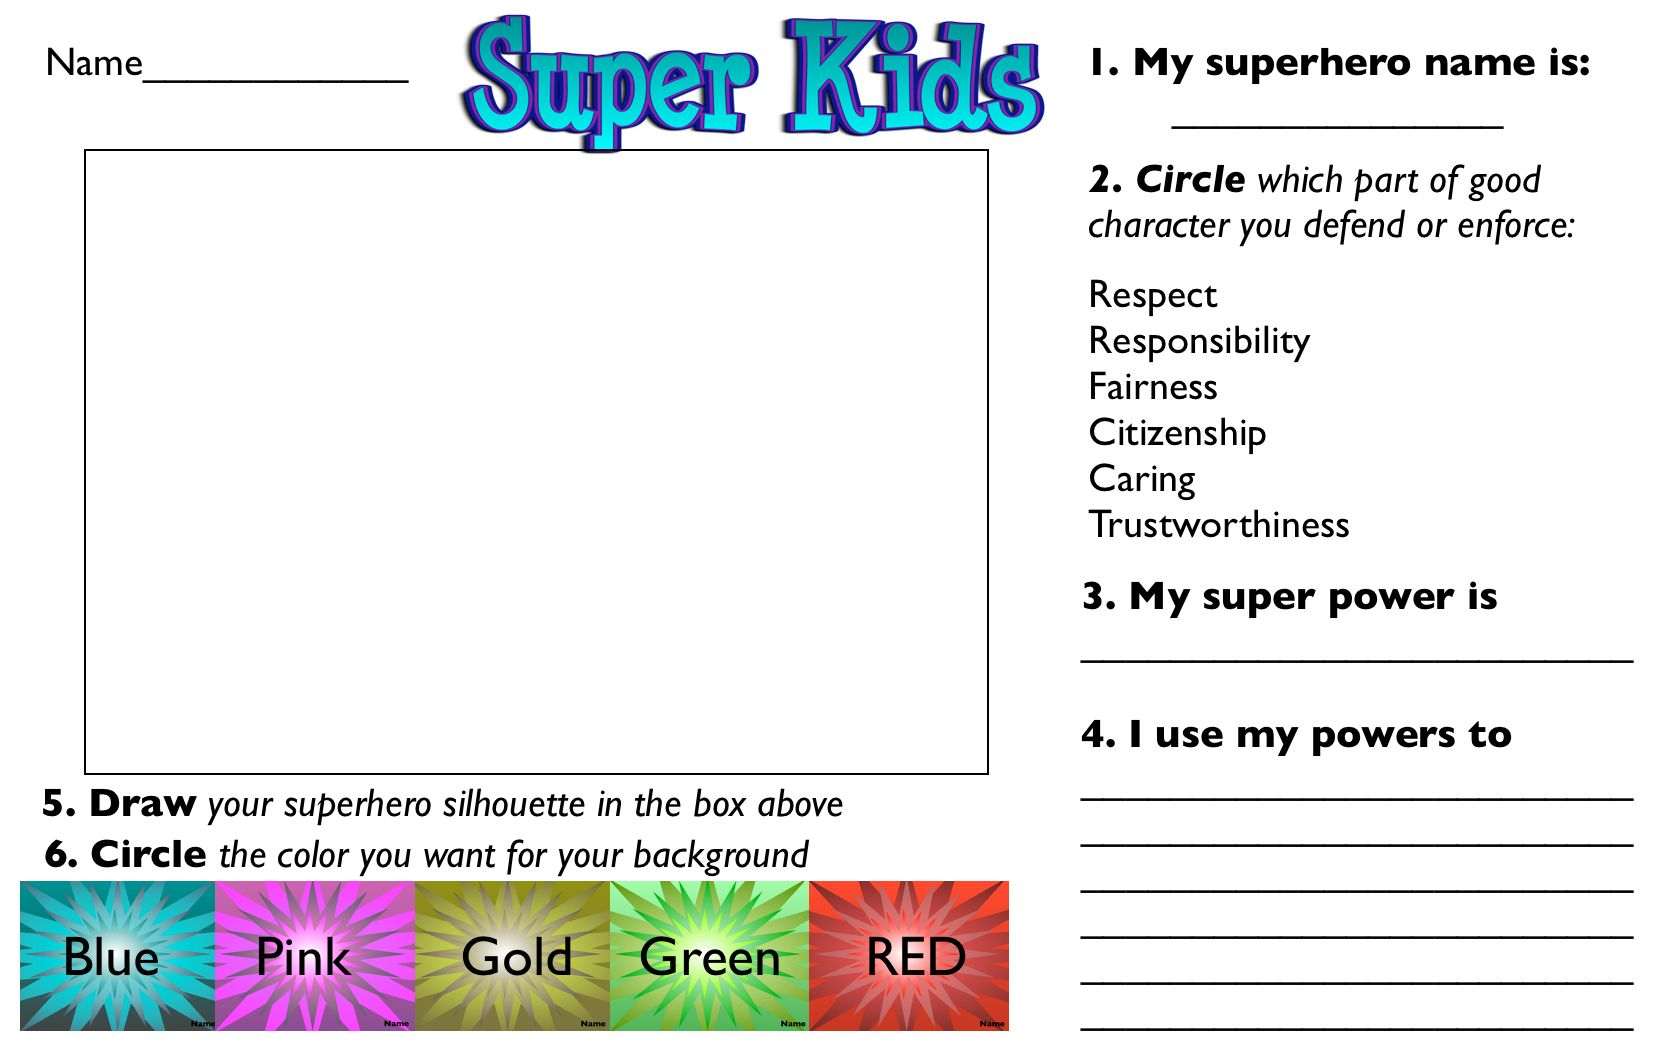 Worksheets Superhero Teacher Worksheets of superhero teacher worksheets sharebrowse collection sharebrowse